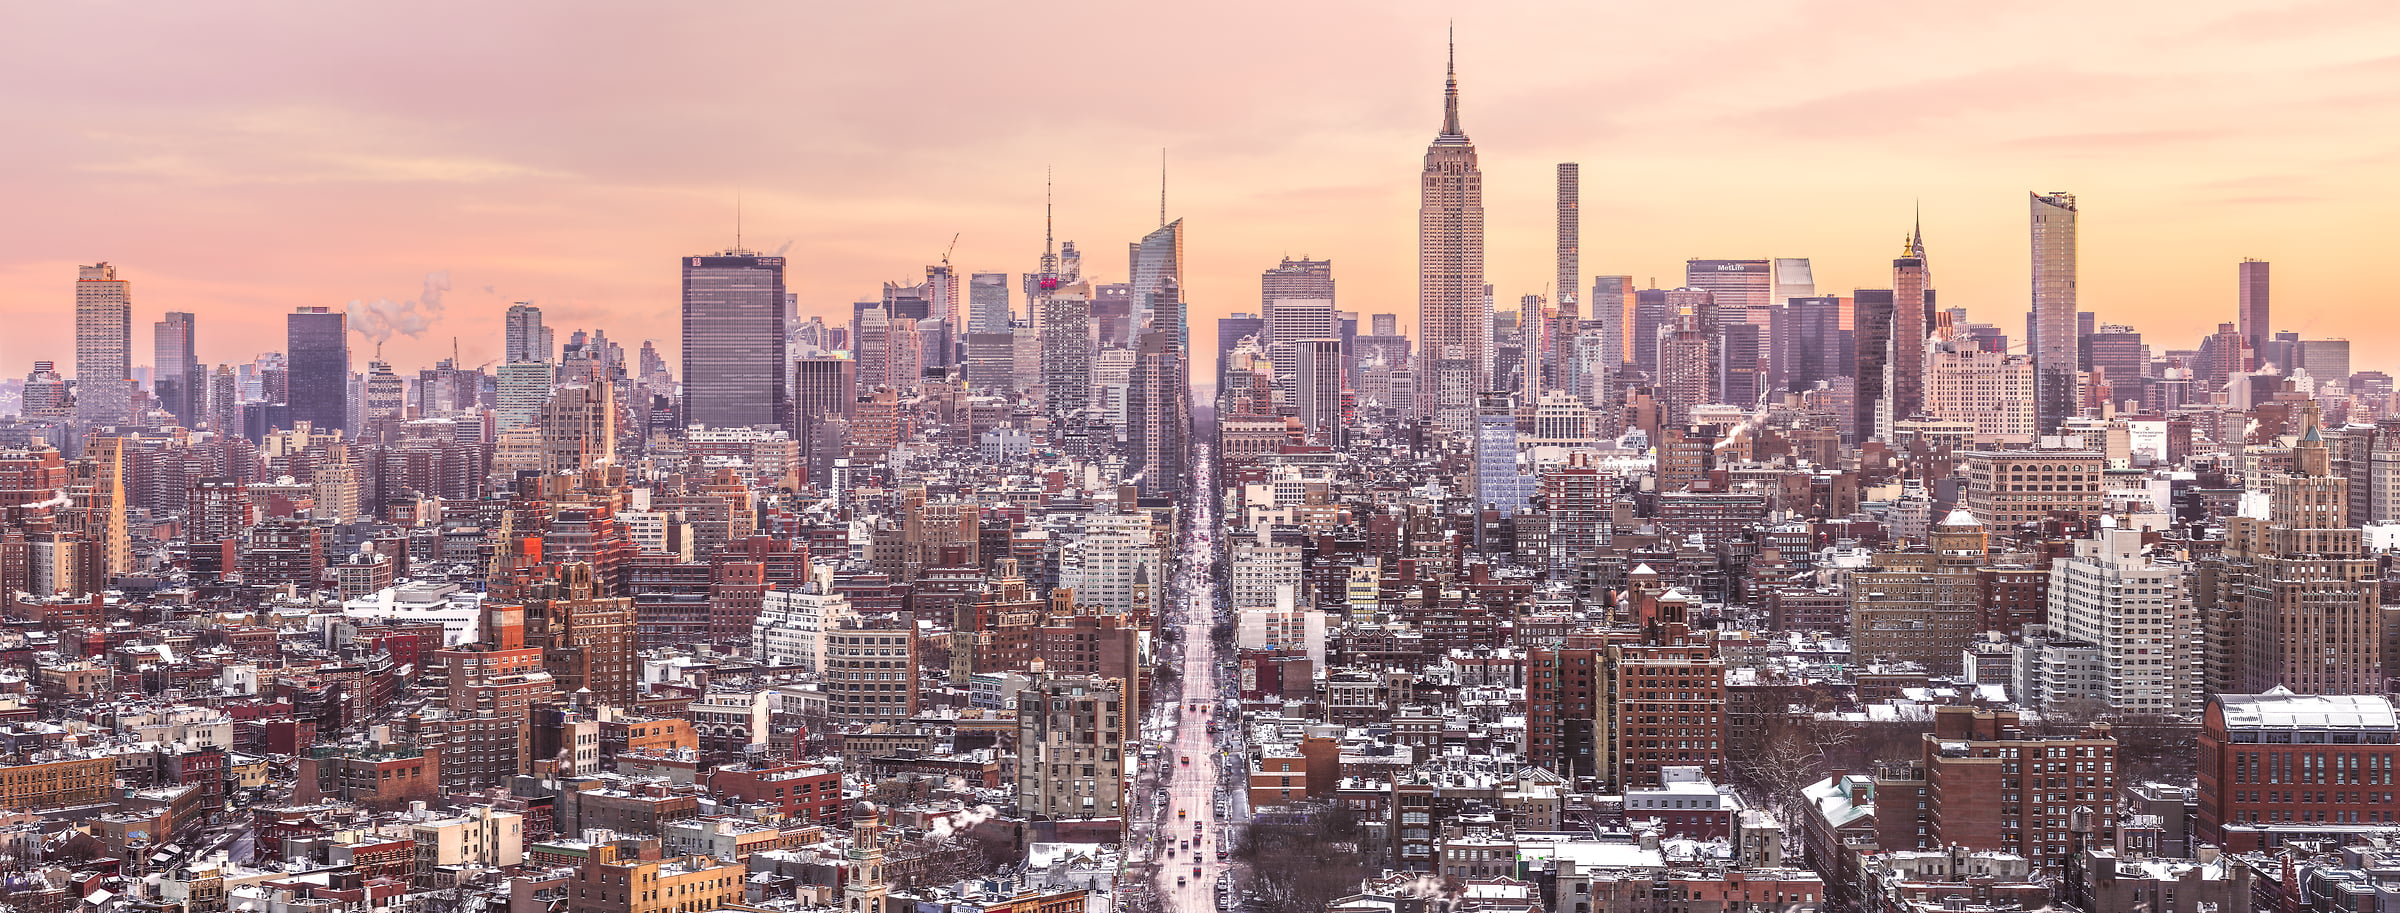 621 megapixels! A very high resolution, large-format VAST photo print of the NYC skyline in winter snow; cityscape sunrise fine art photo created by Dan Piech in New York City